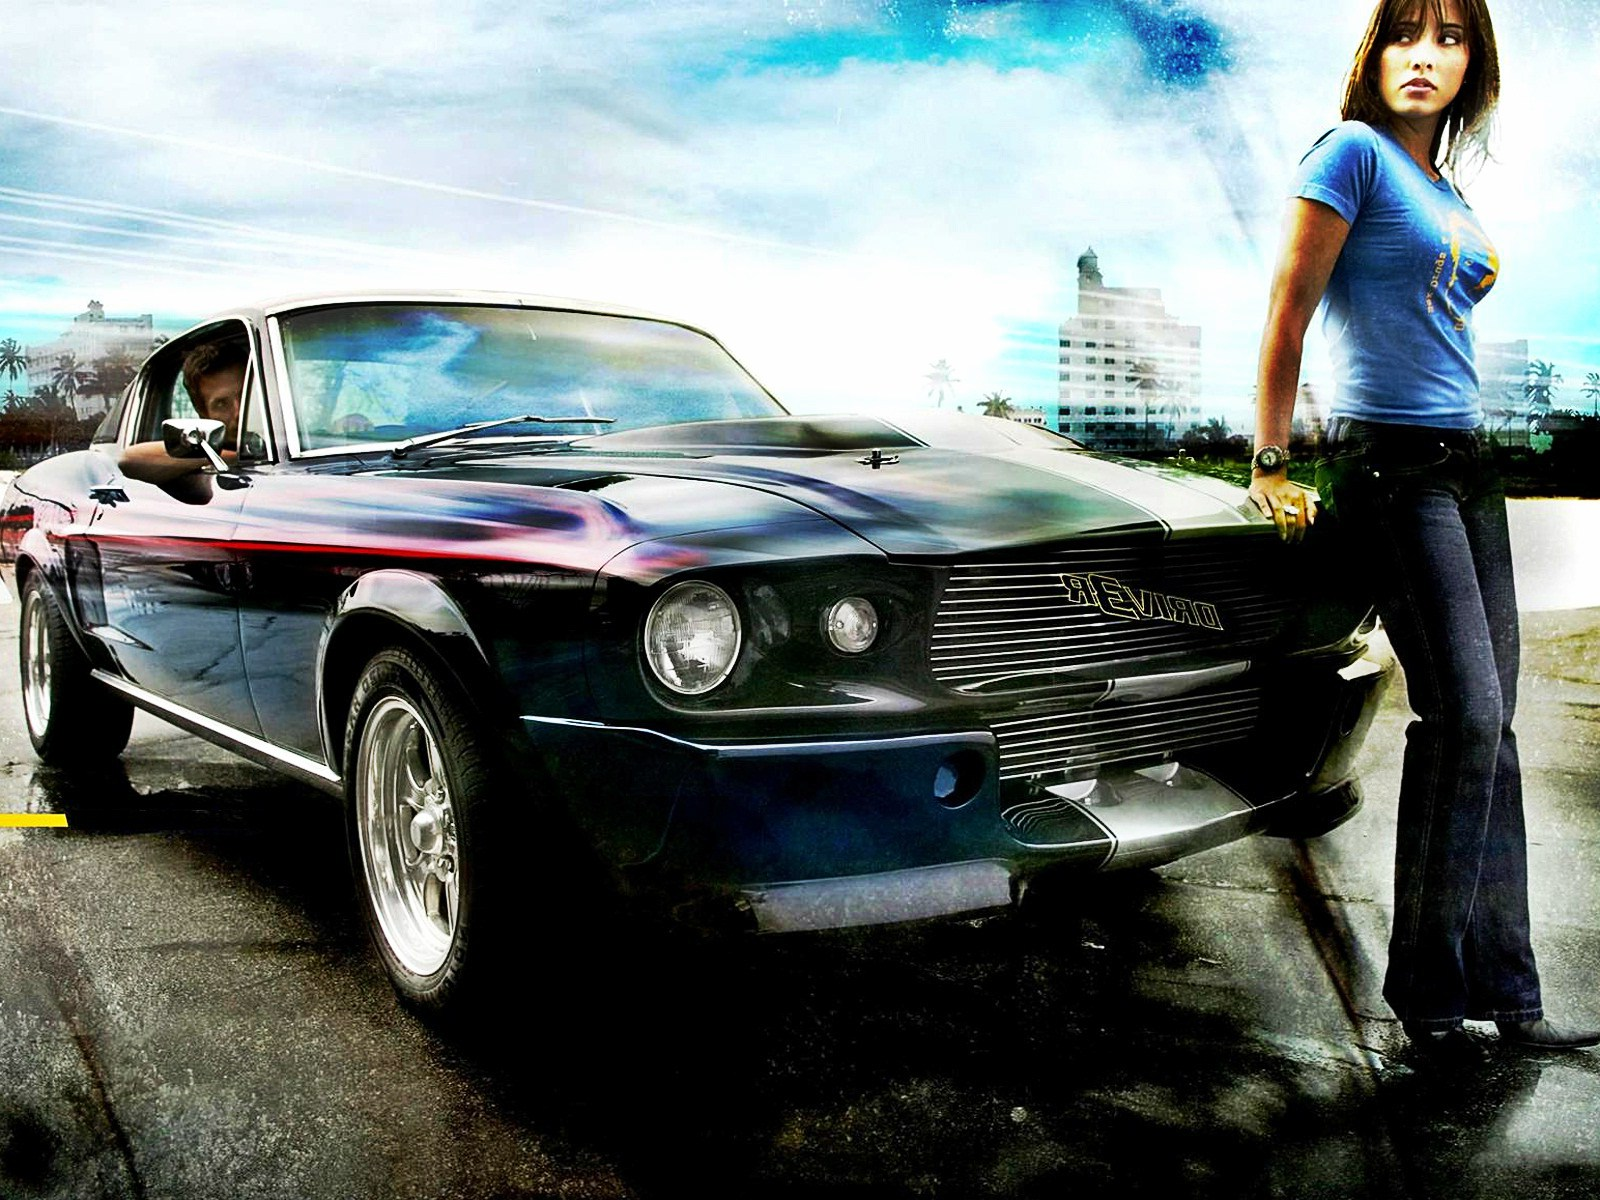 classic car with girl desktop wallpaper for background free